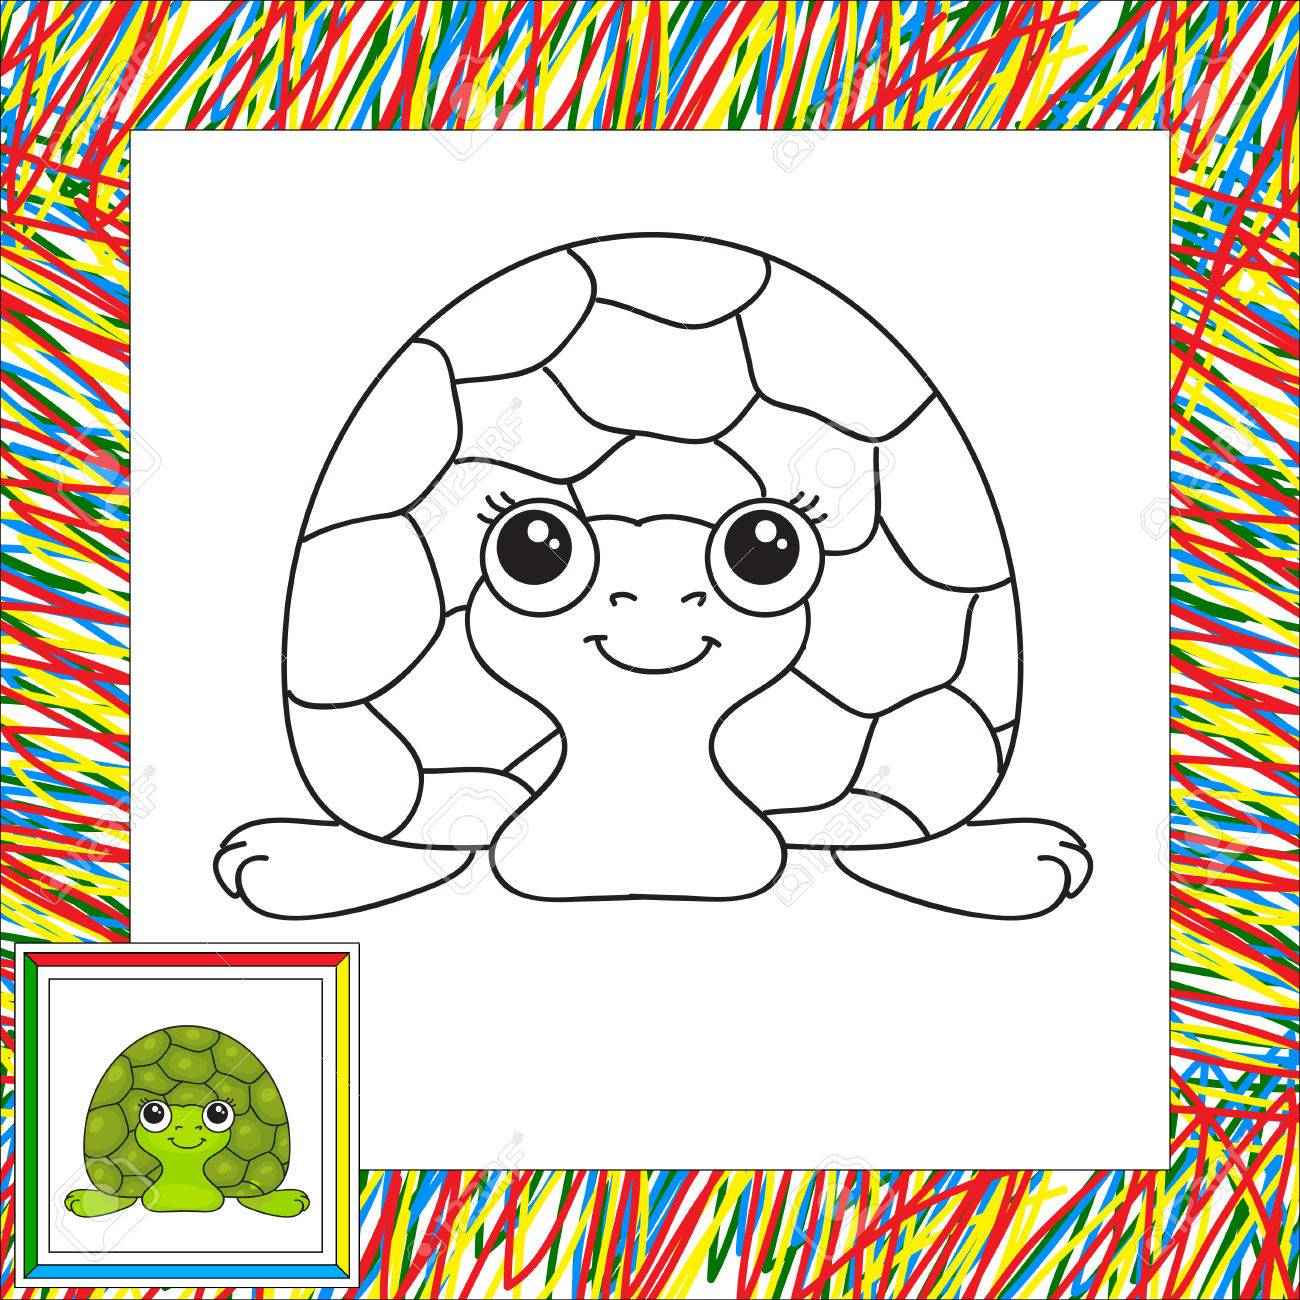 Funny Green Turtle Illustration For Children Coloring Book Kids Stock